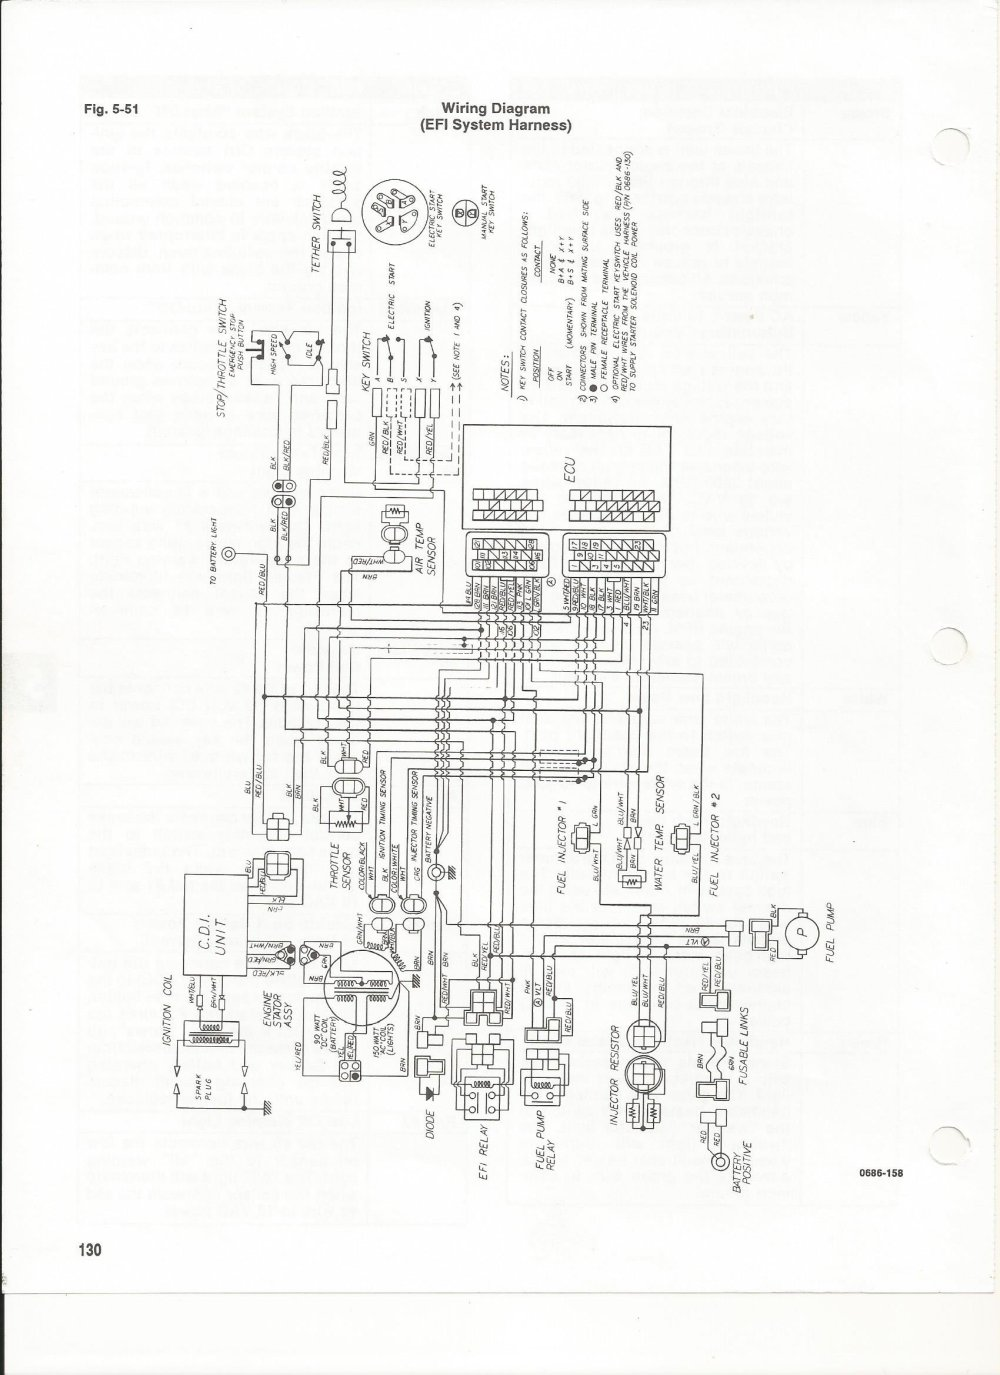 medium resolution of 1993 arctic wildcat wiring diagram wiring diagrams rh 23 treatchildtrauma de arctic cat 250 wiring diagram t250 bobcat wiring diagram